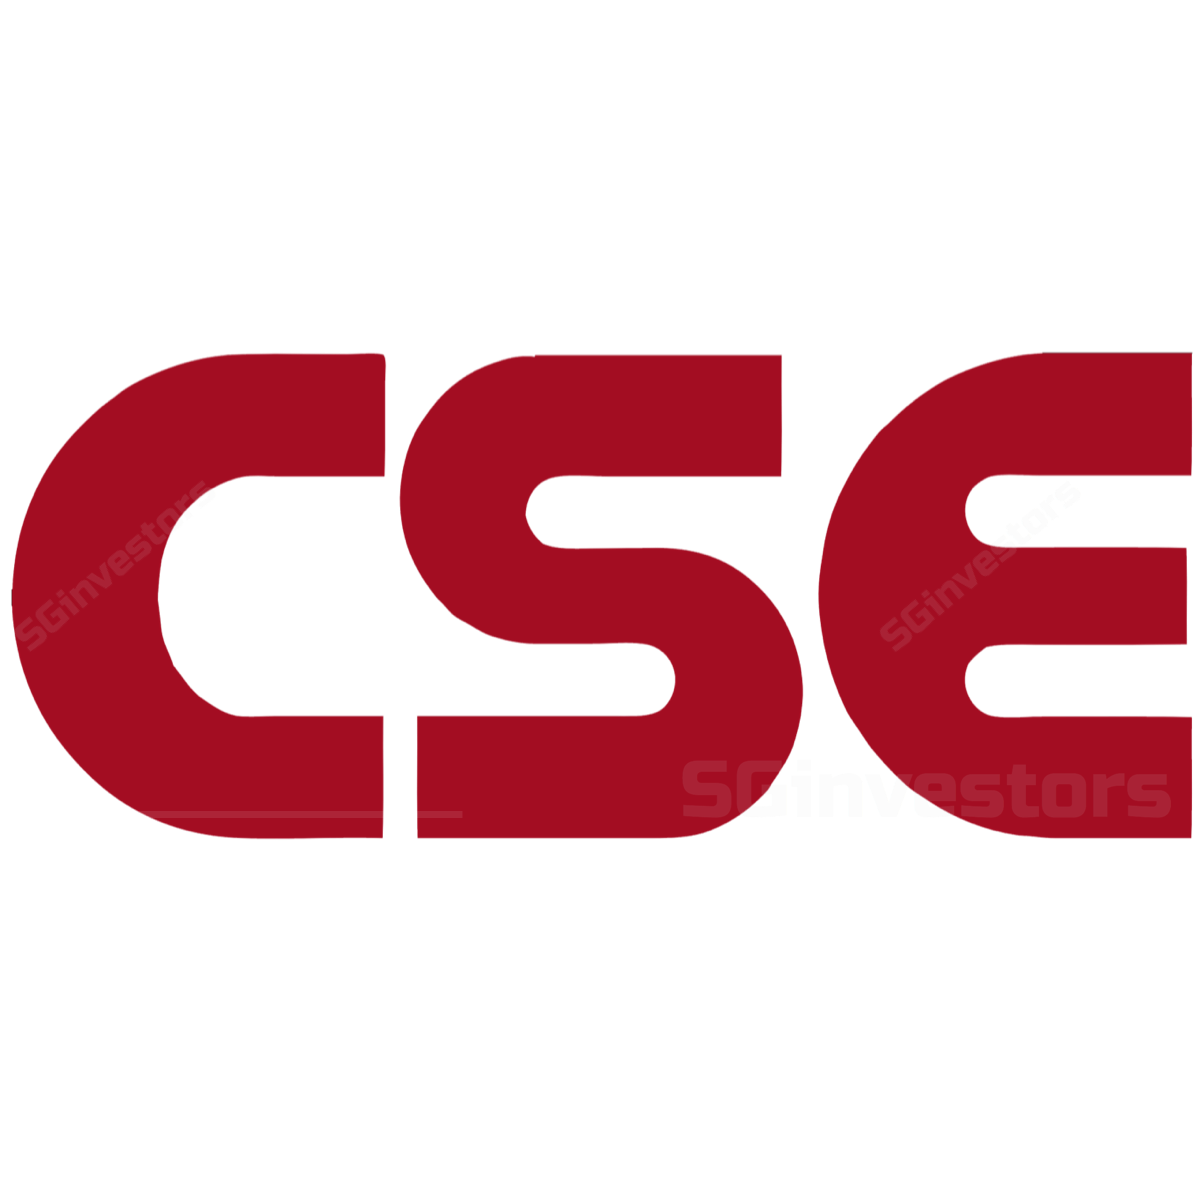 CSE Global (CSE SP) - UOB Kay Hian 2018-05-10: 1q18 Results Above Expectations; Yield Remains Very Attractive At 6.3%